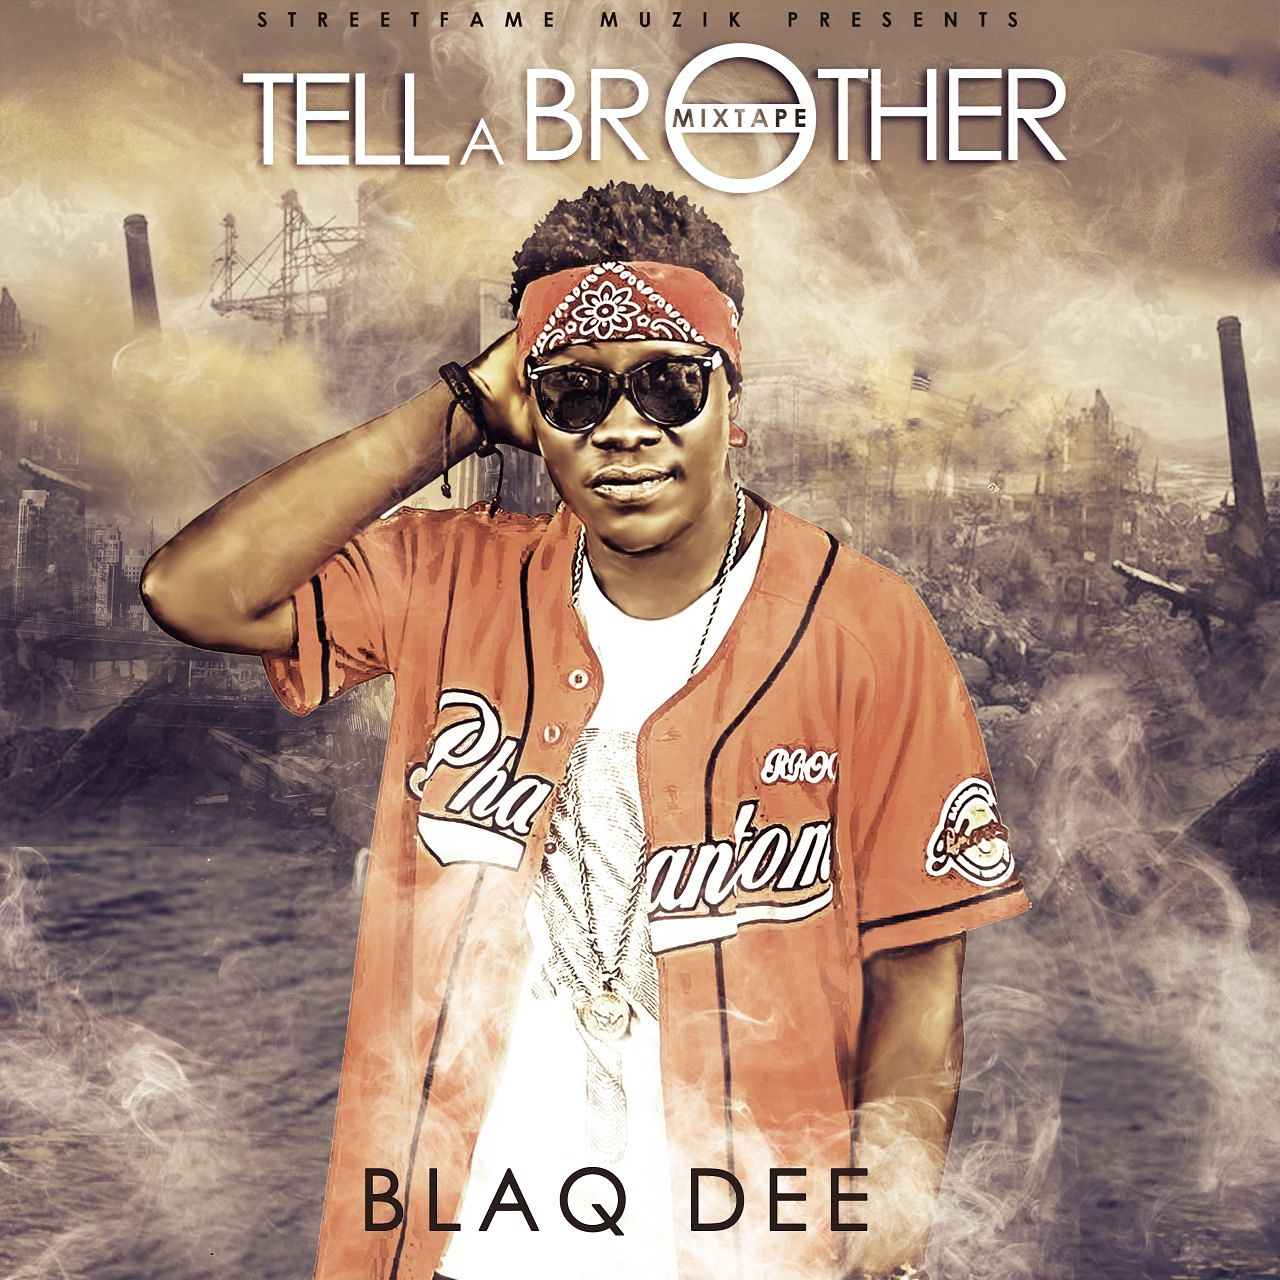 Mere Yrr Fhtere Ni Mp3 Song Downlod: MIXTAPE ALBUM: TELL A BROTHER